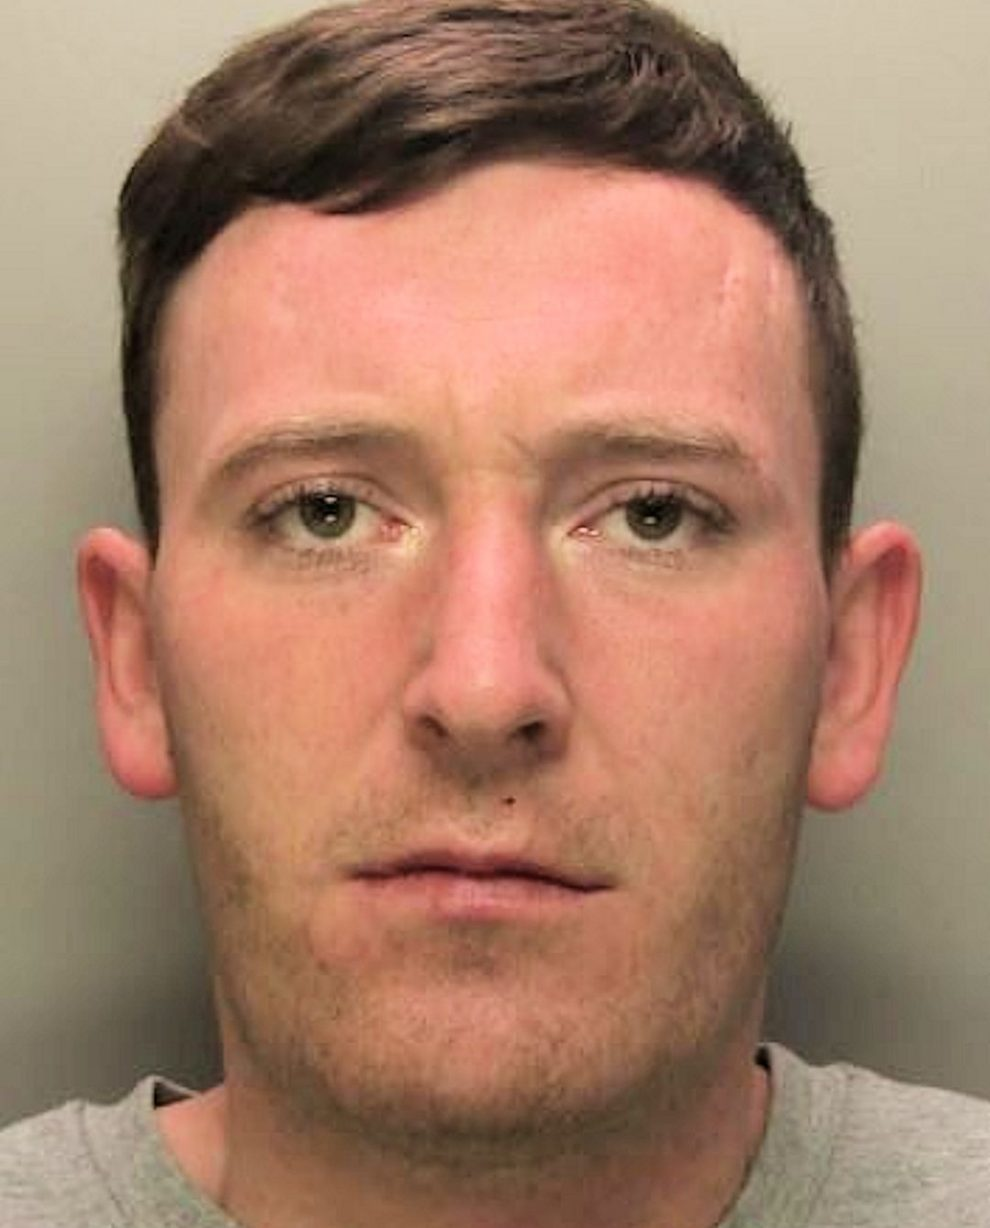 Search for Adam Beynon from Crawley missing since 20th of May